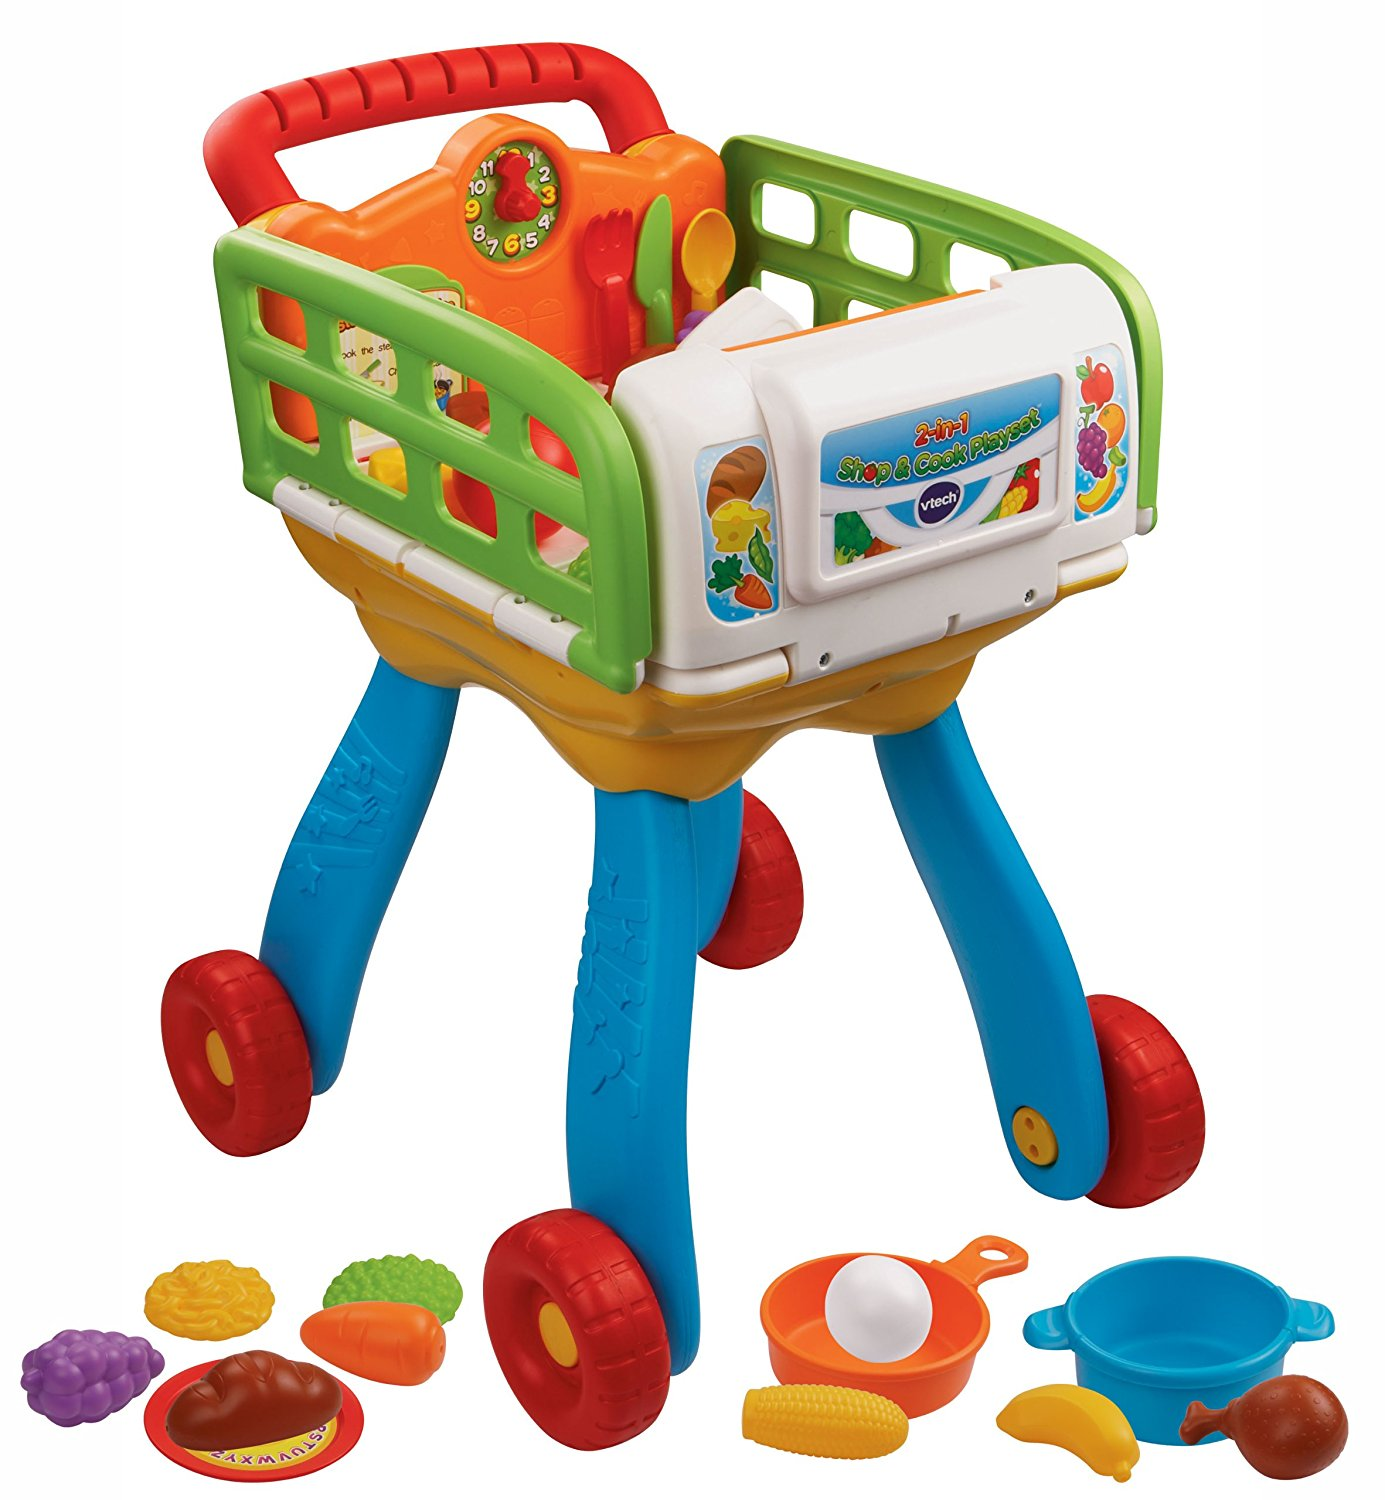 VTech 2-in-1 Shop and Cook Playset by